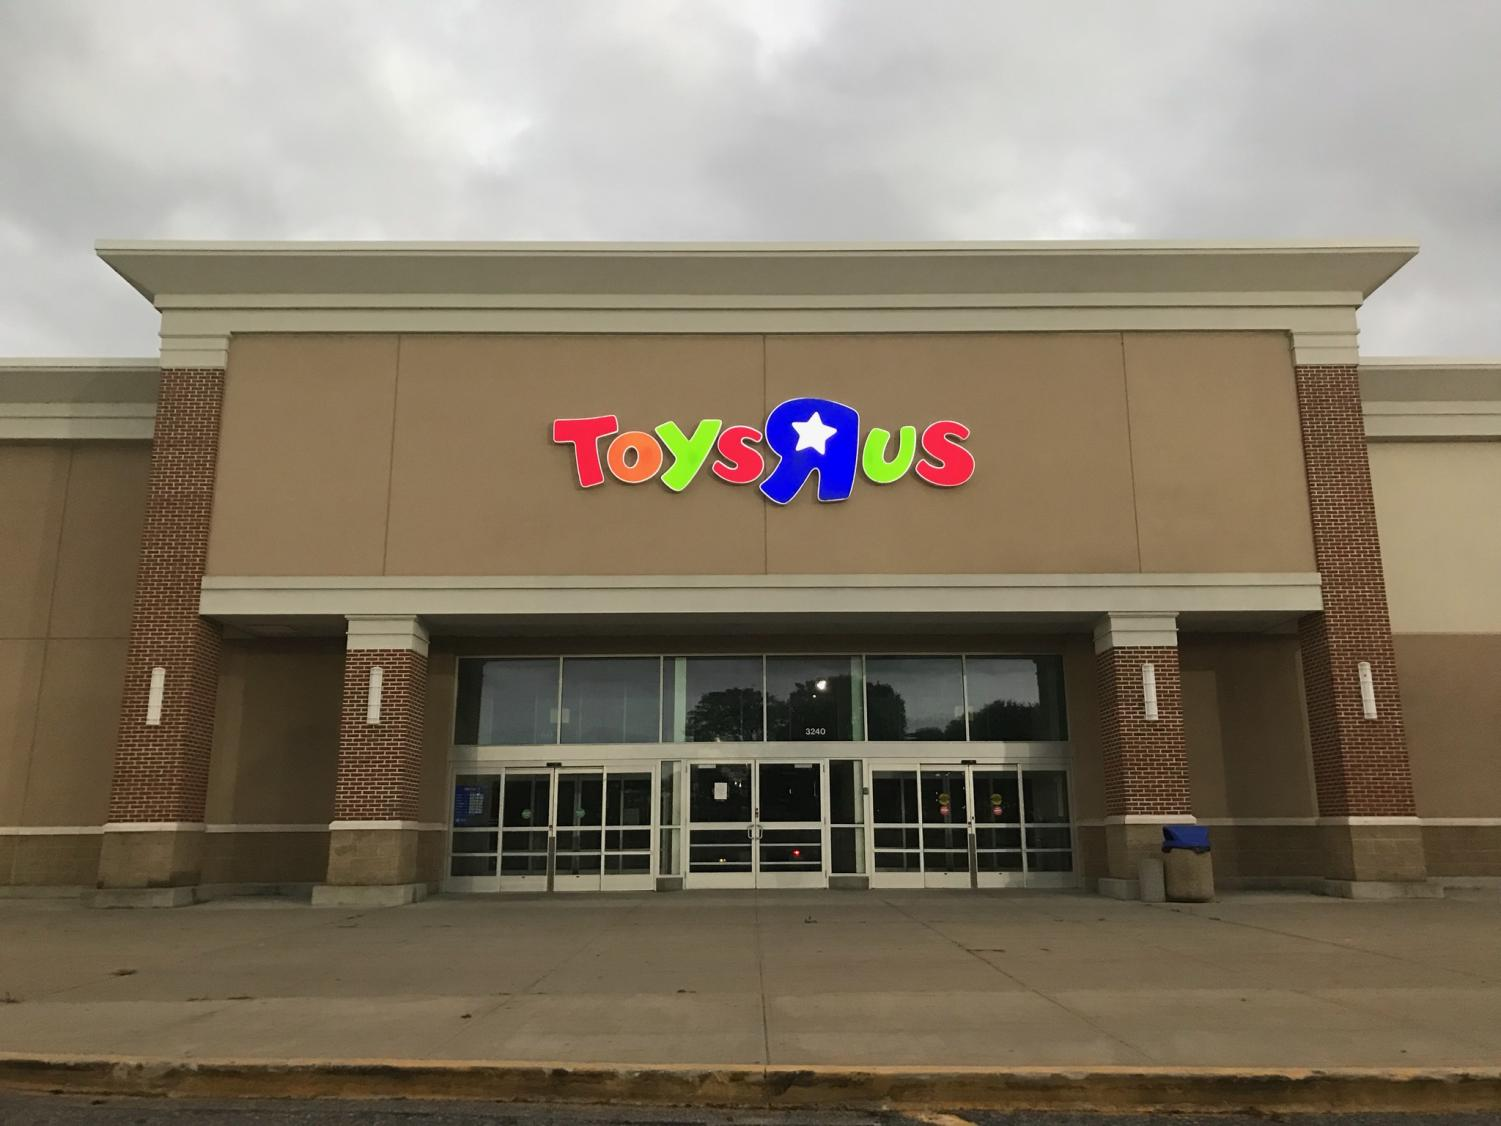 A brand revival could be on the horizon for a beloved toy store that closed its doors this past year.